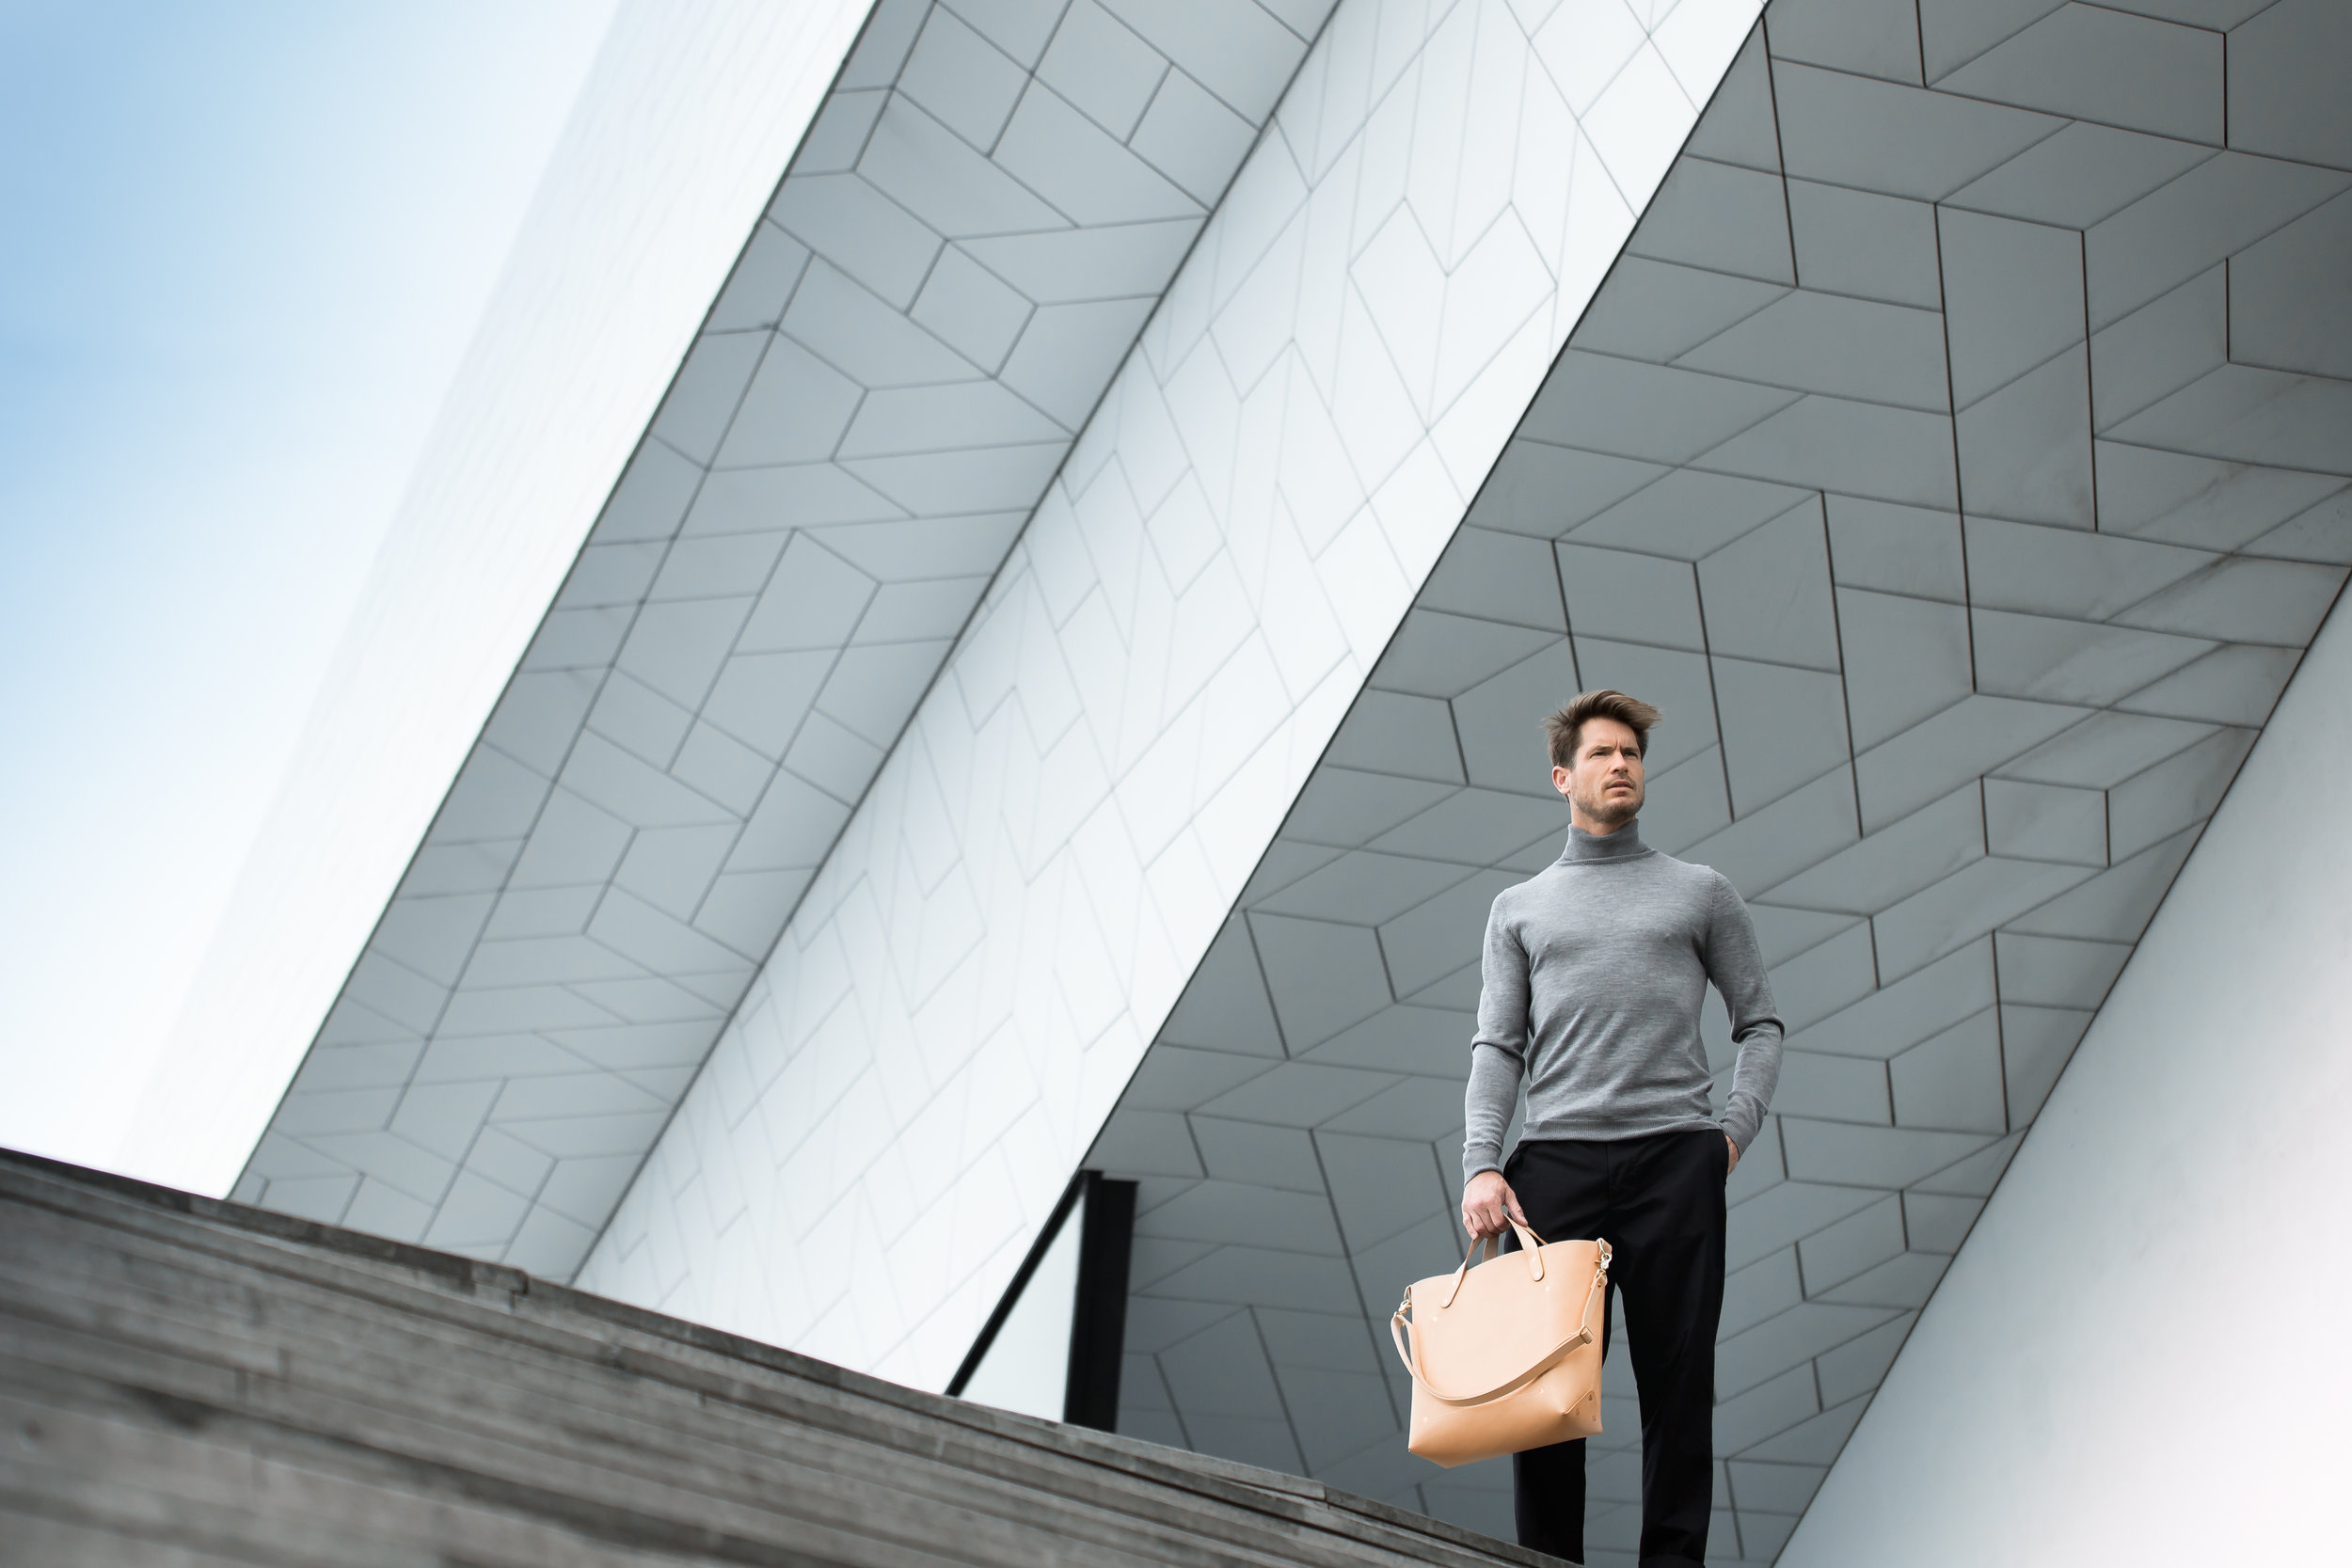 Bag: Dyemond Goods Leather bag // Top:  Dilor knitted turtle neck  // Pants:  Bellerose Plano